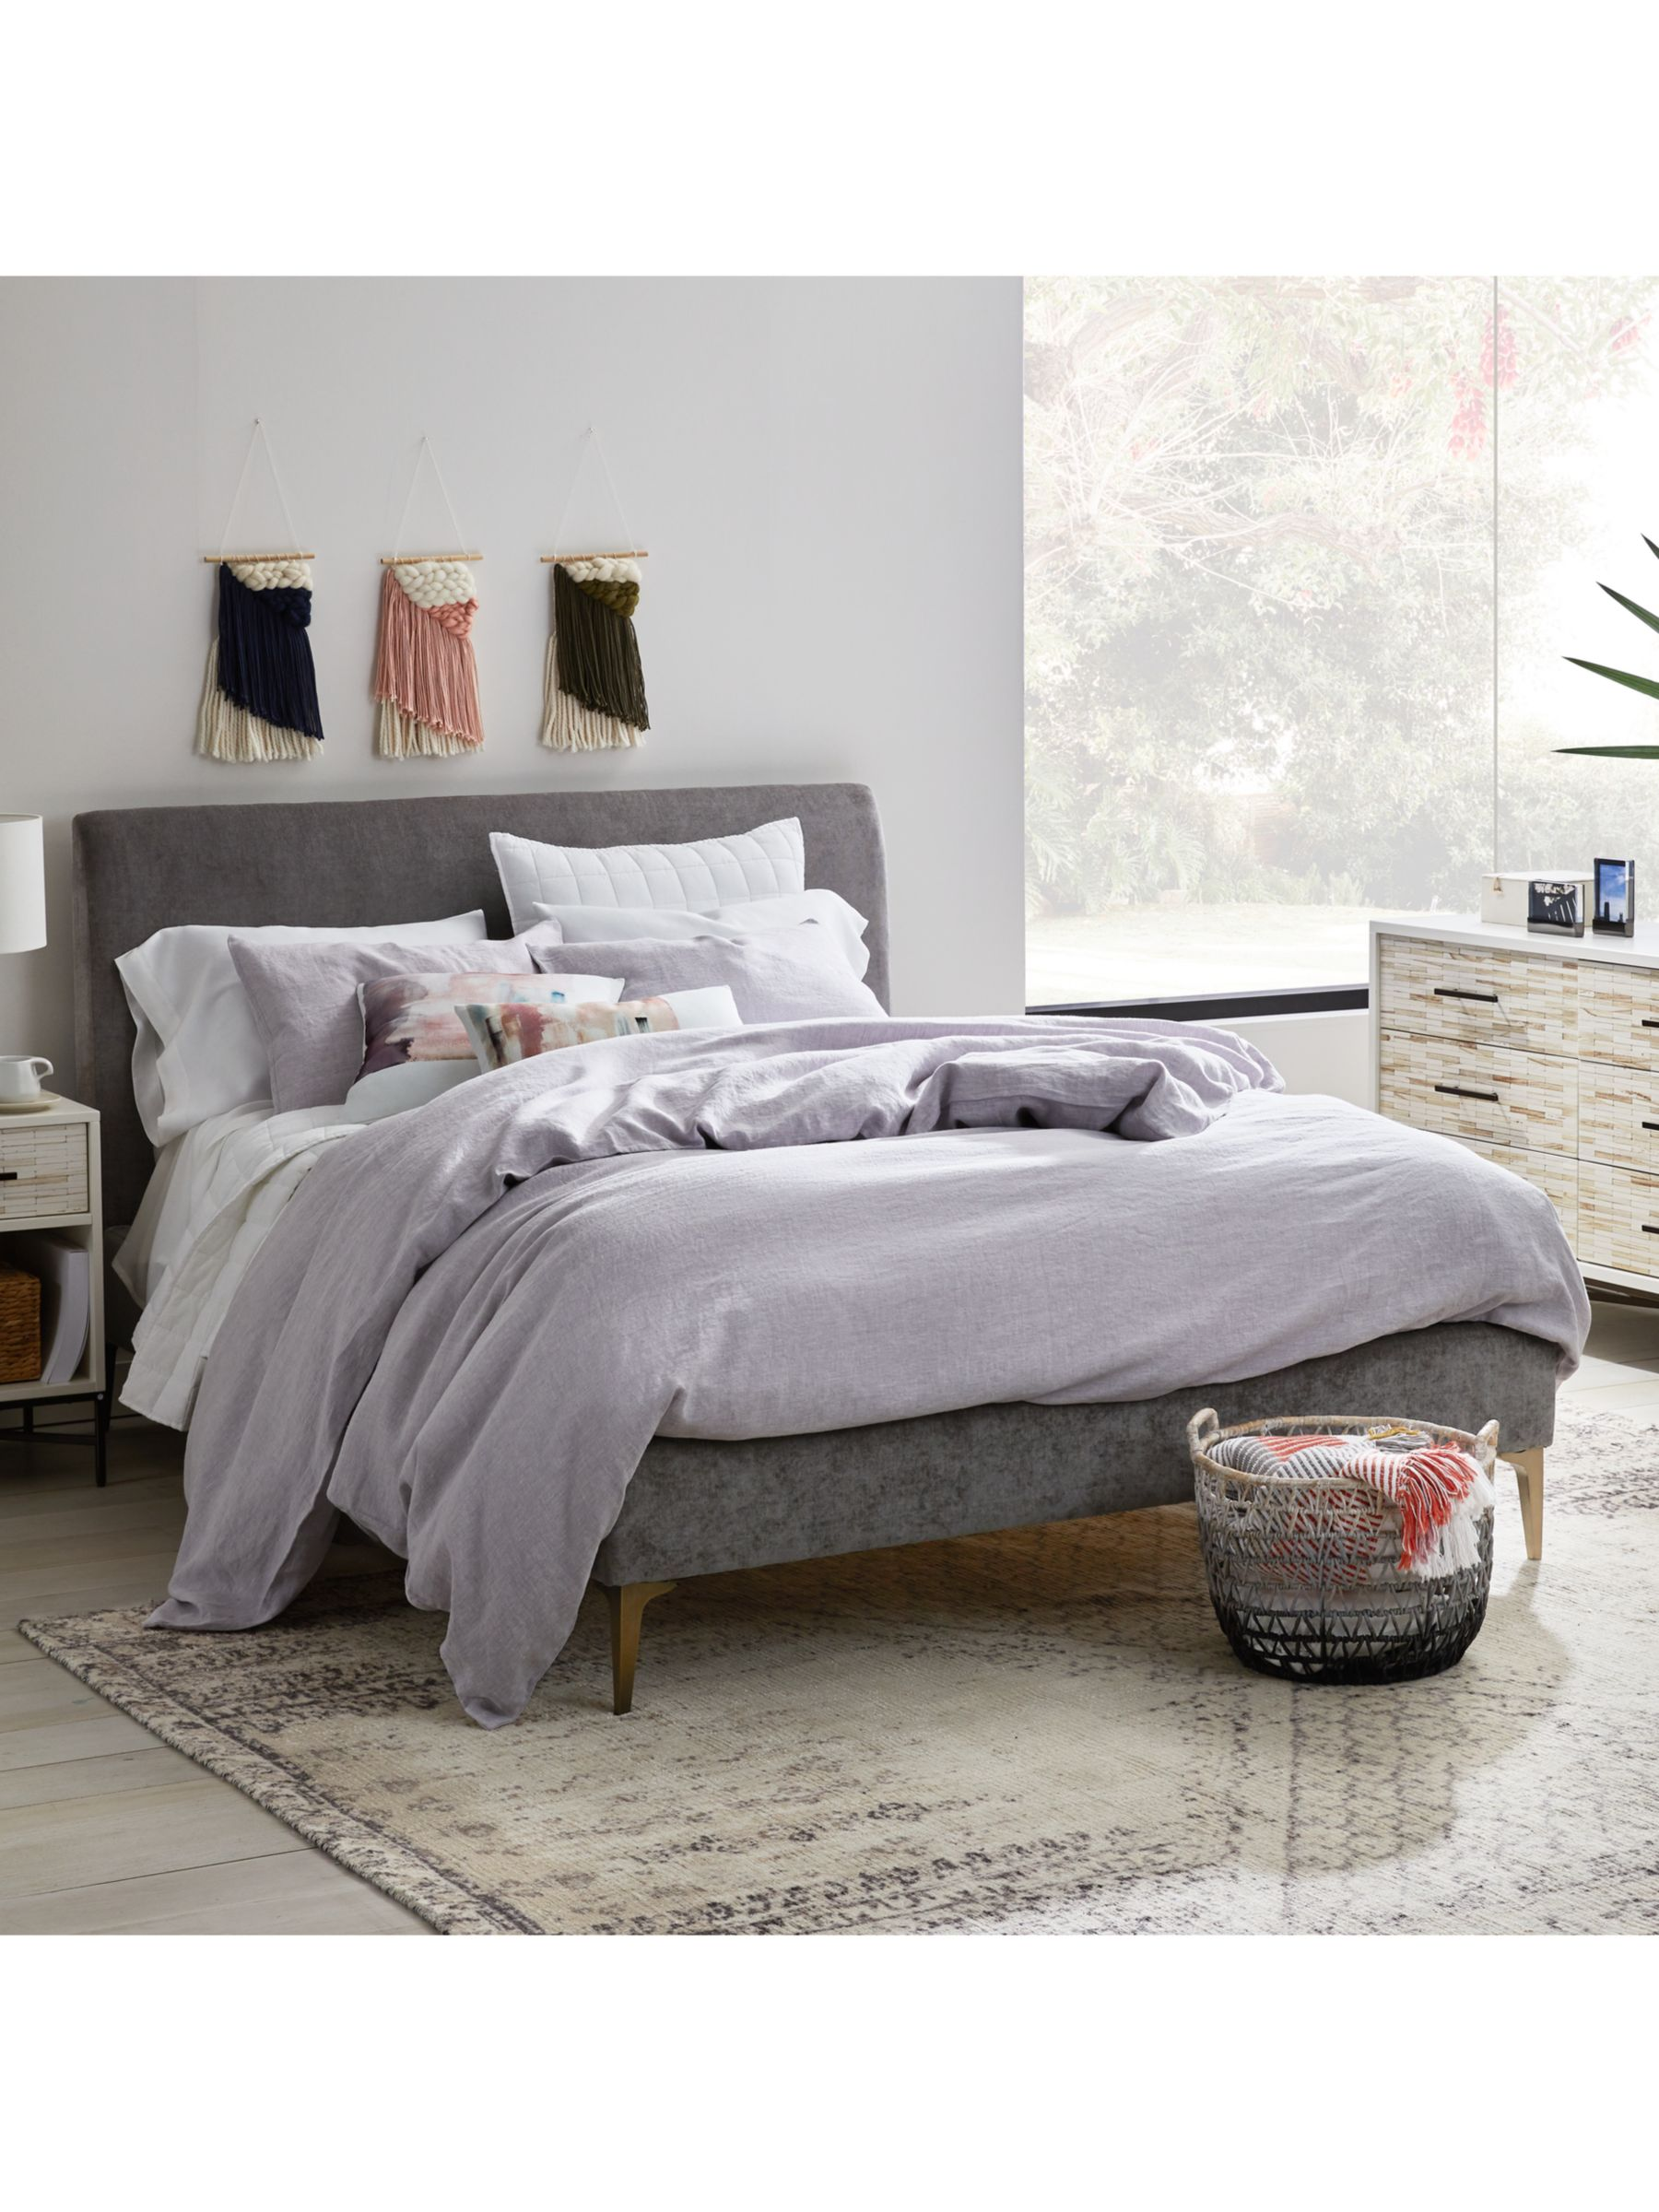 West Elm Andes Deco Upholstered Bed Frame Double Grey At John Lewis Partners